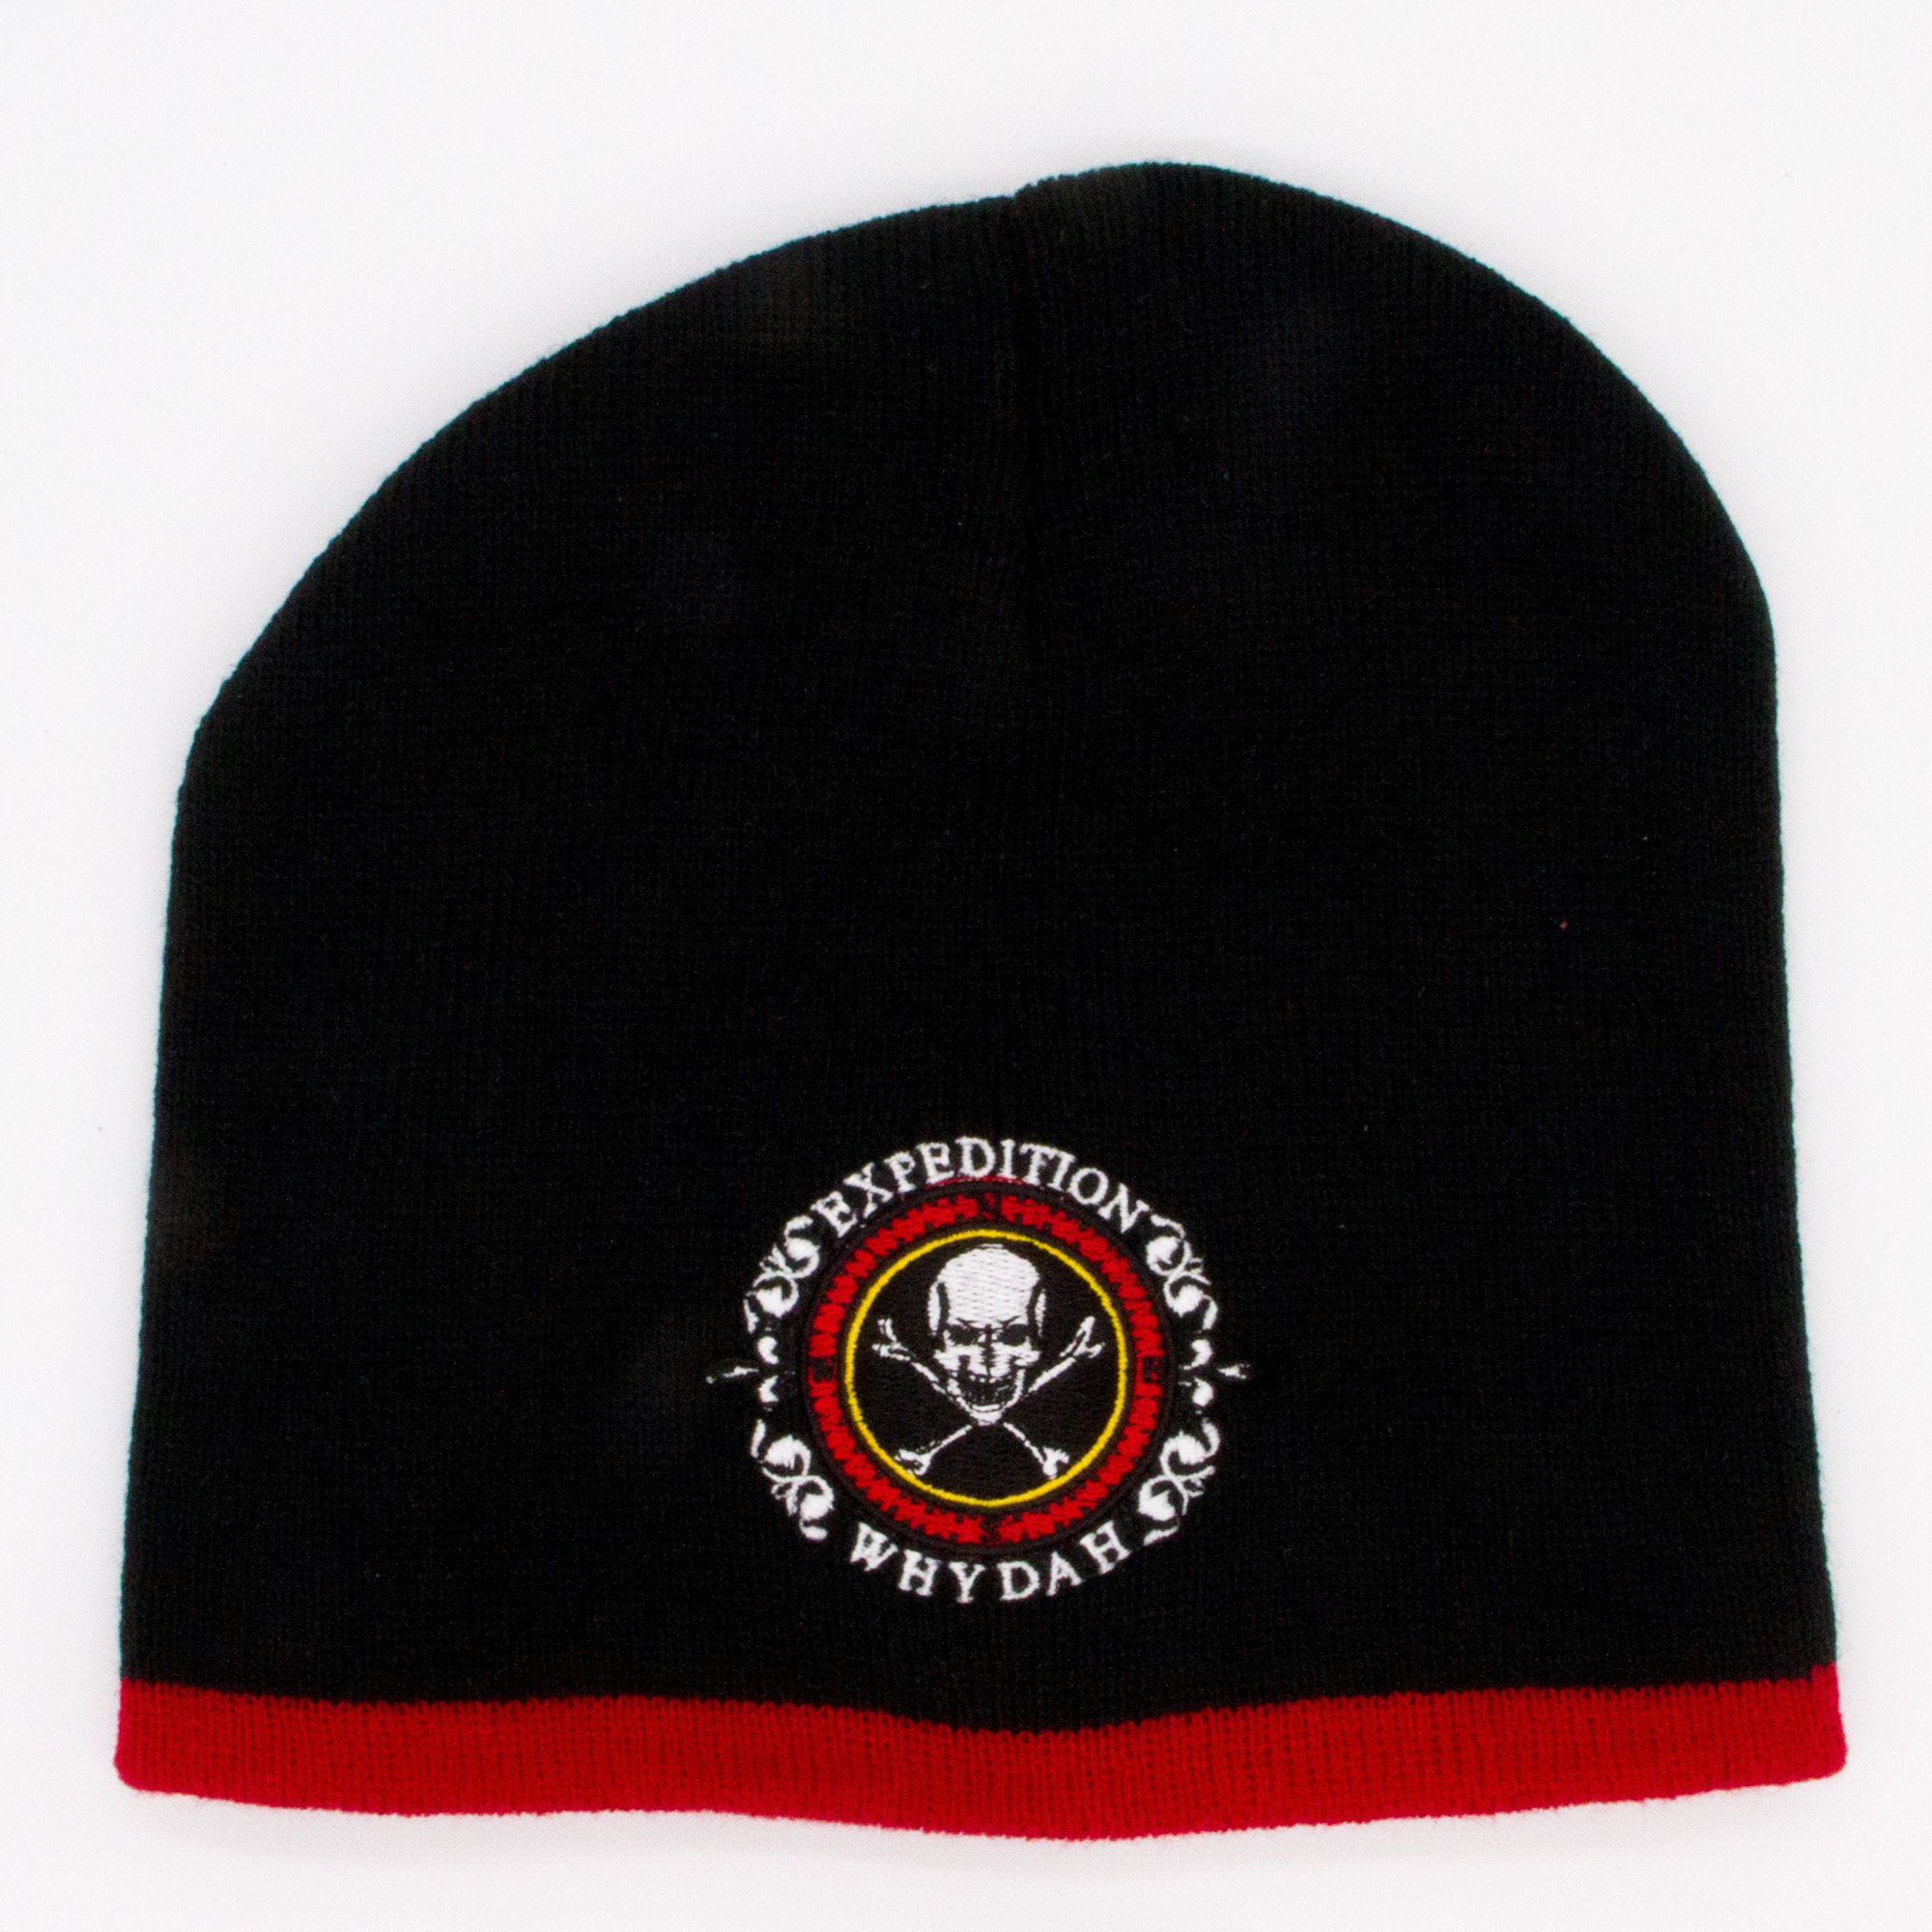 Expedition Whydah Knit Hat 00020